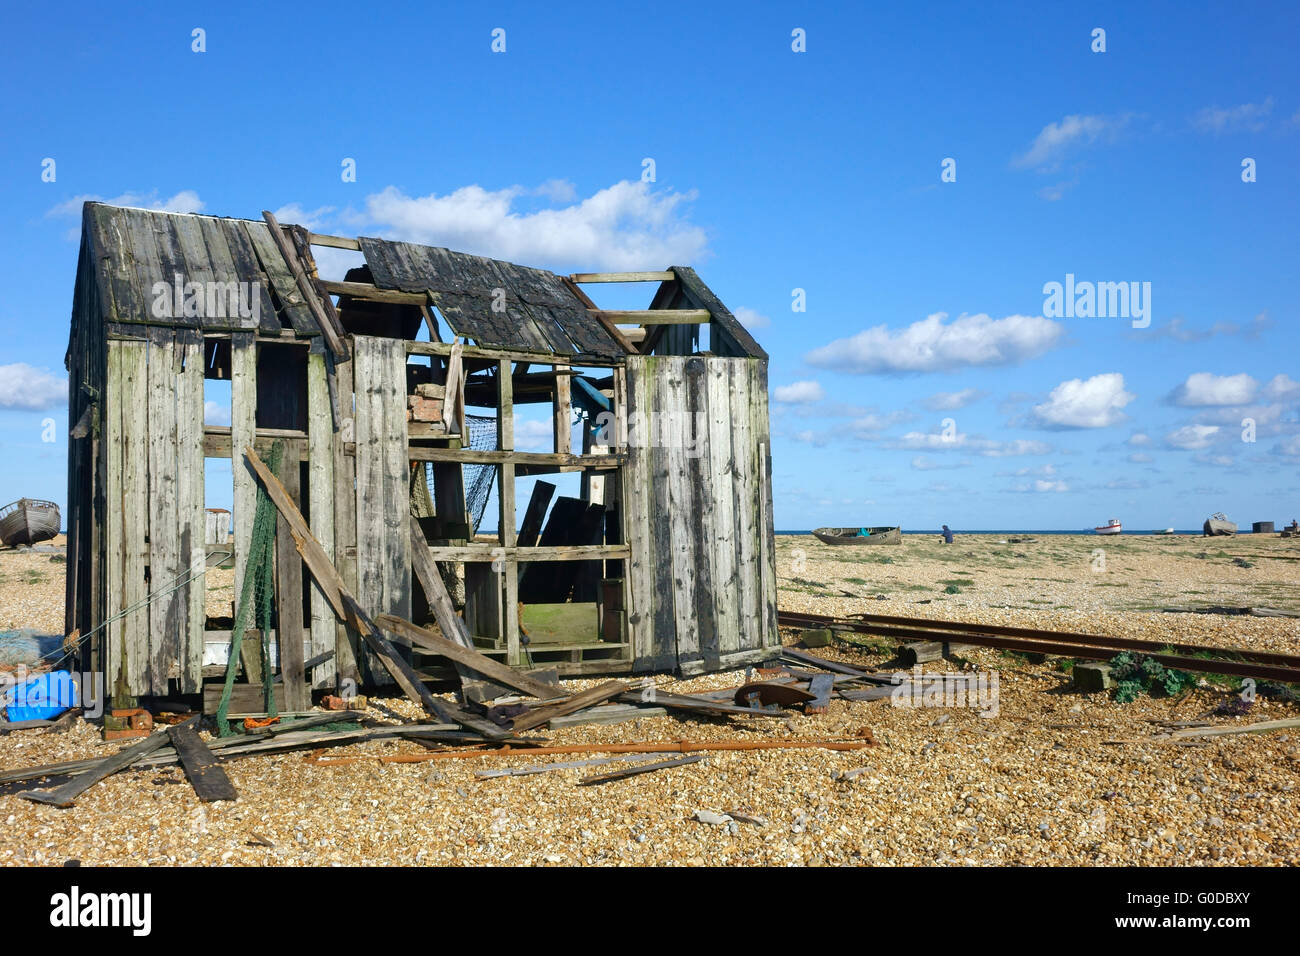 Old Abandoned fisherman's hut on Dungeness shingle beach Kent England UK - Stock Image